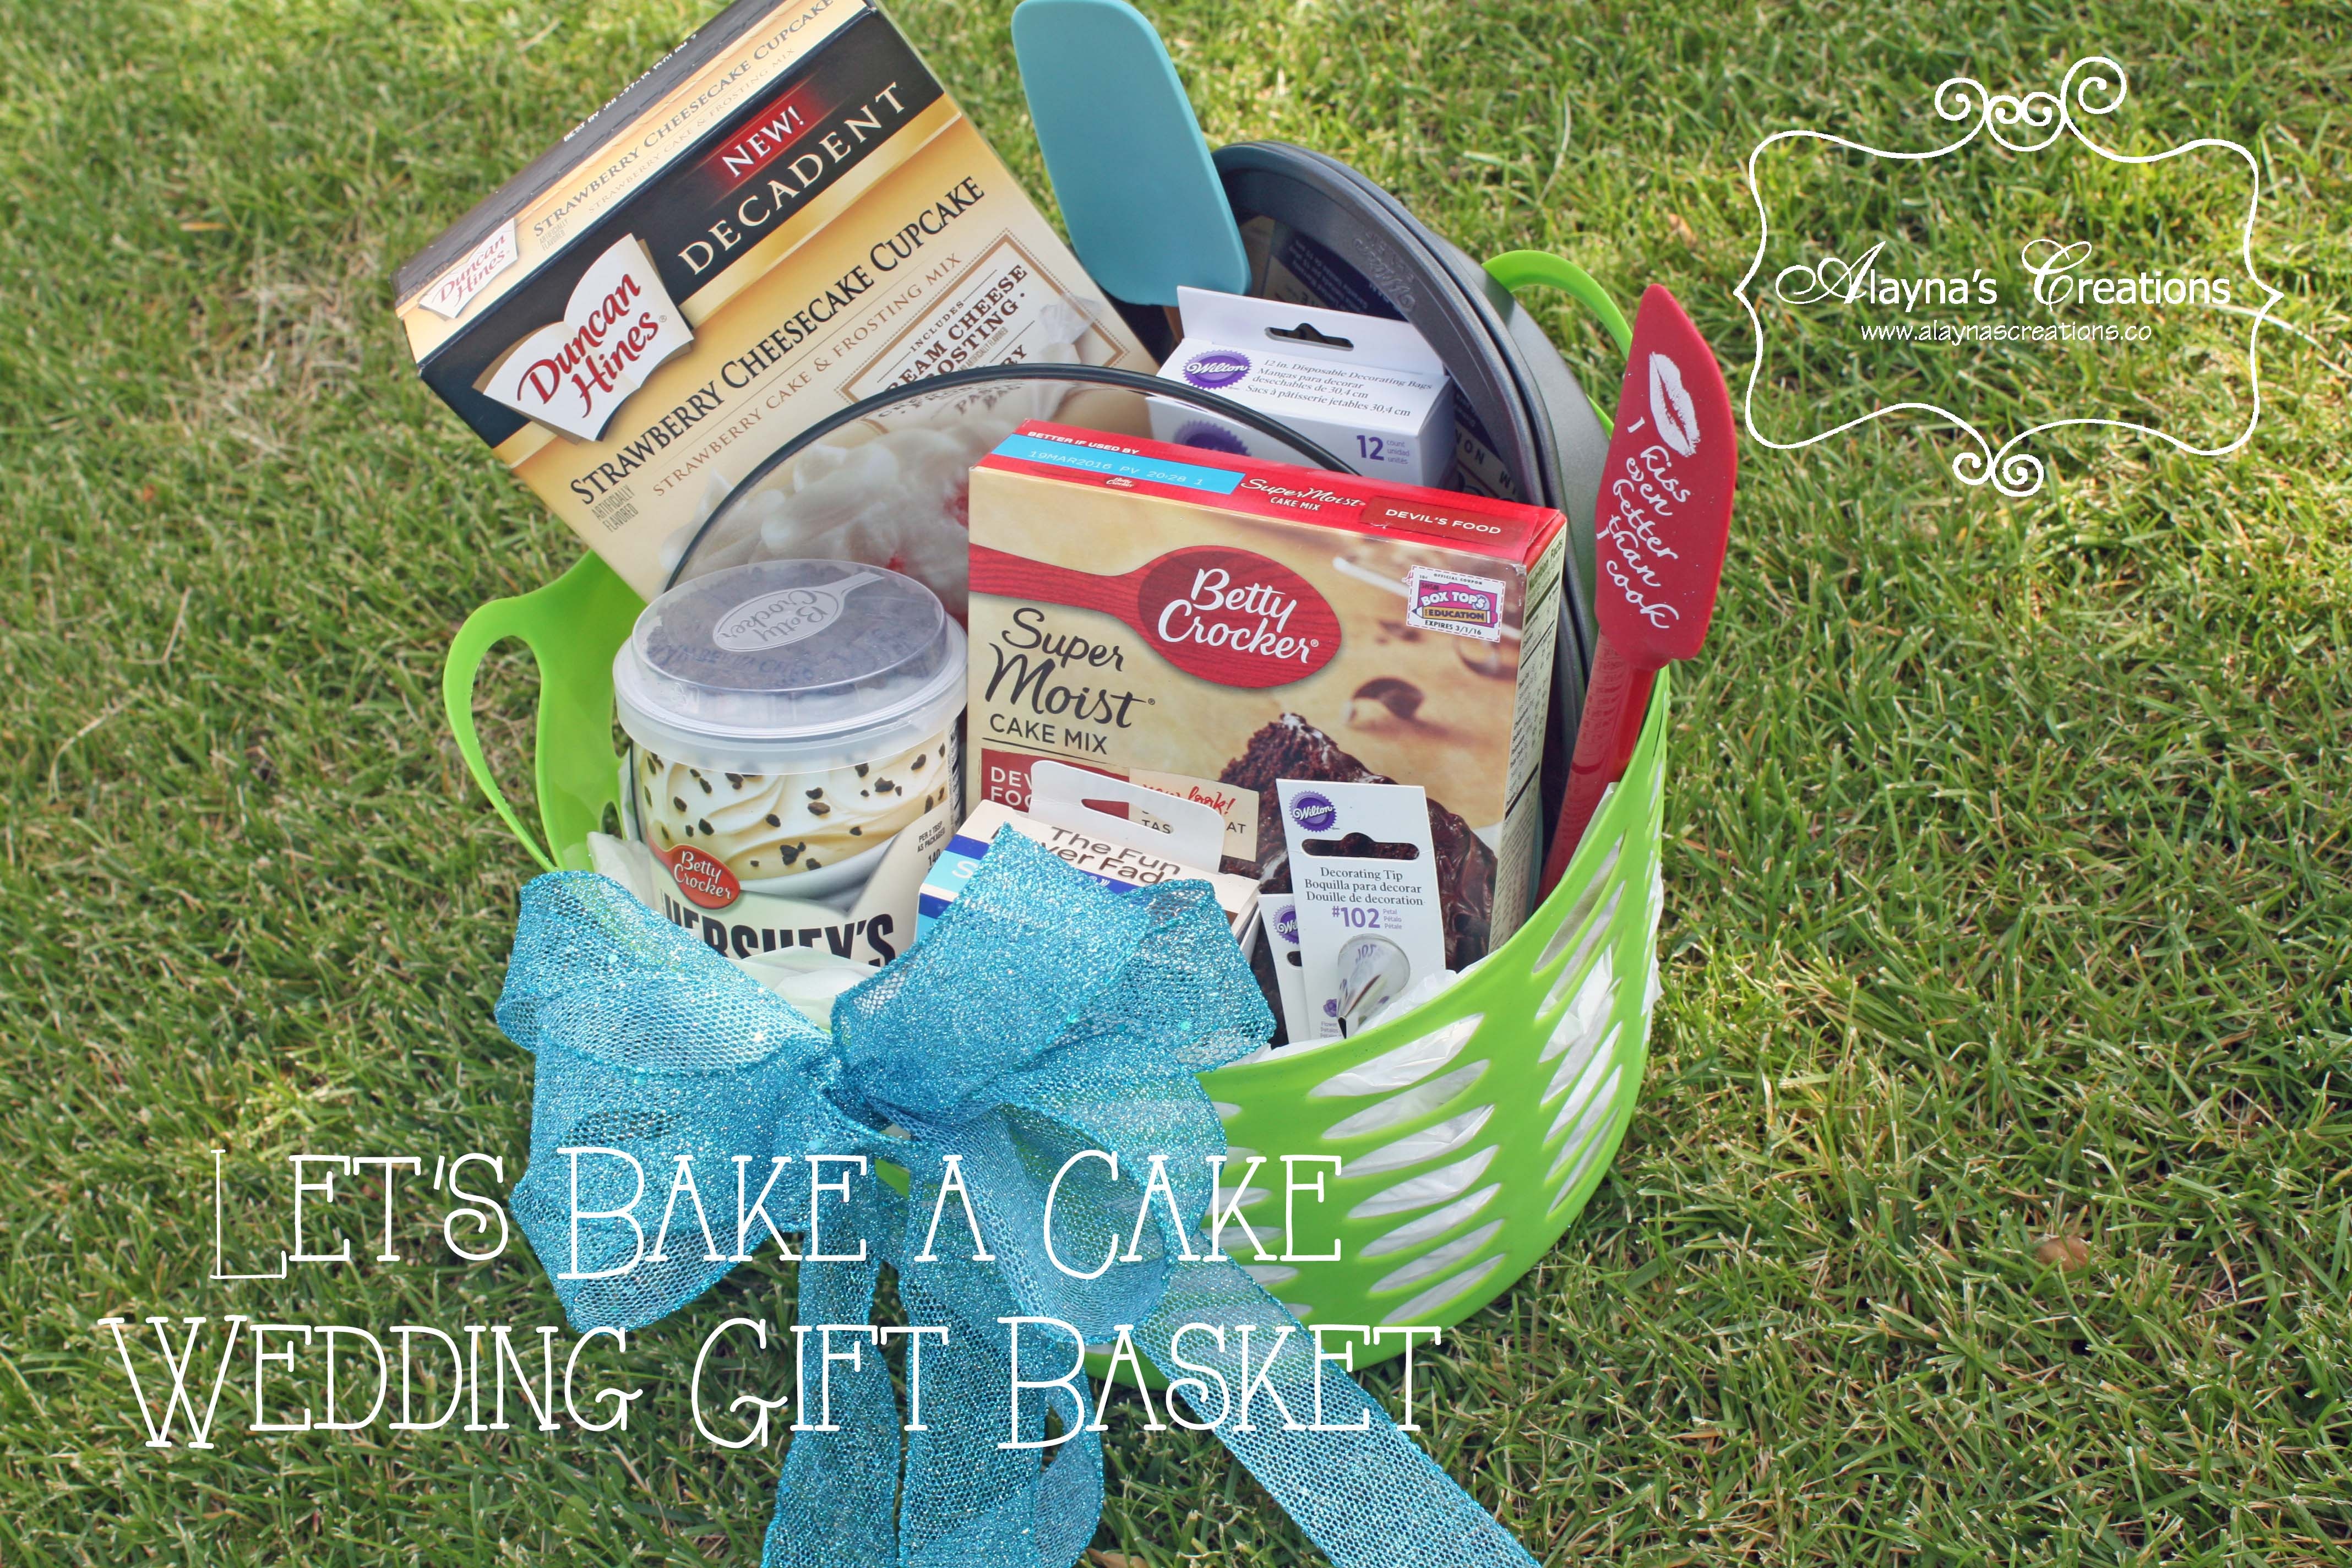 Date Night Gift Basket Ideas For Bridal Shower Give The Gift Of Pre